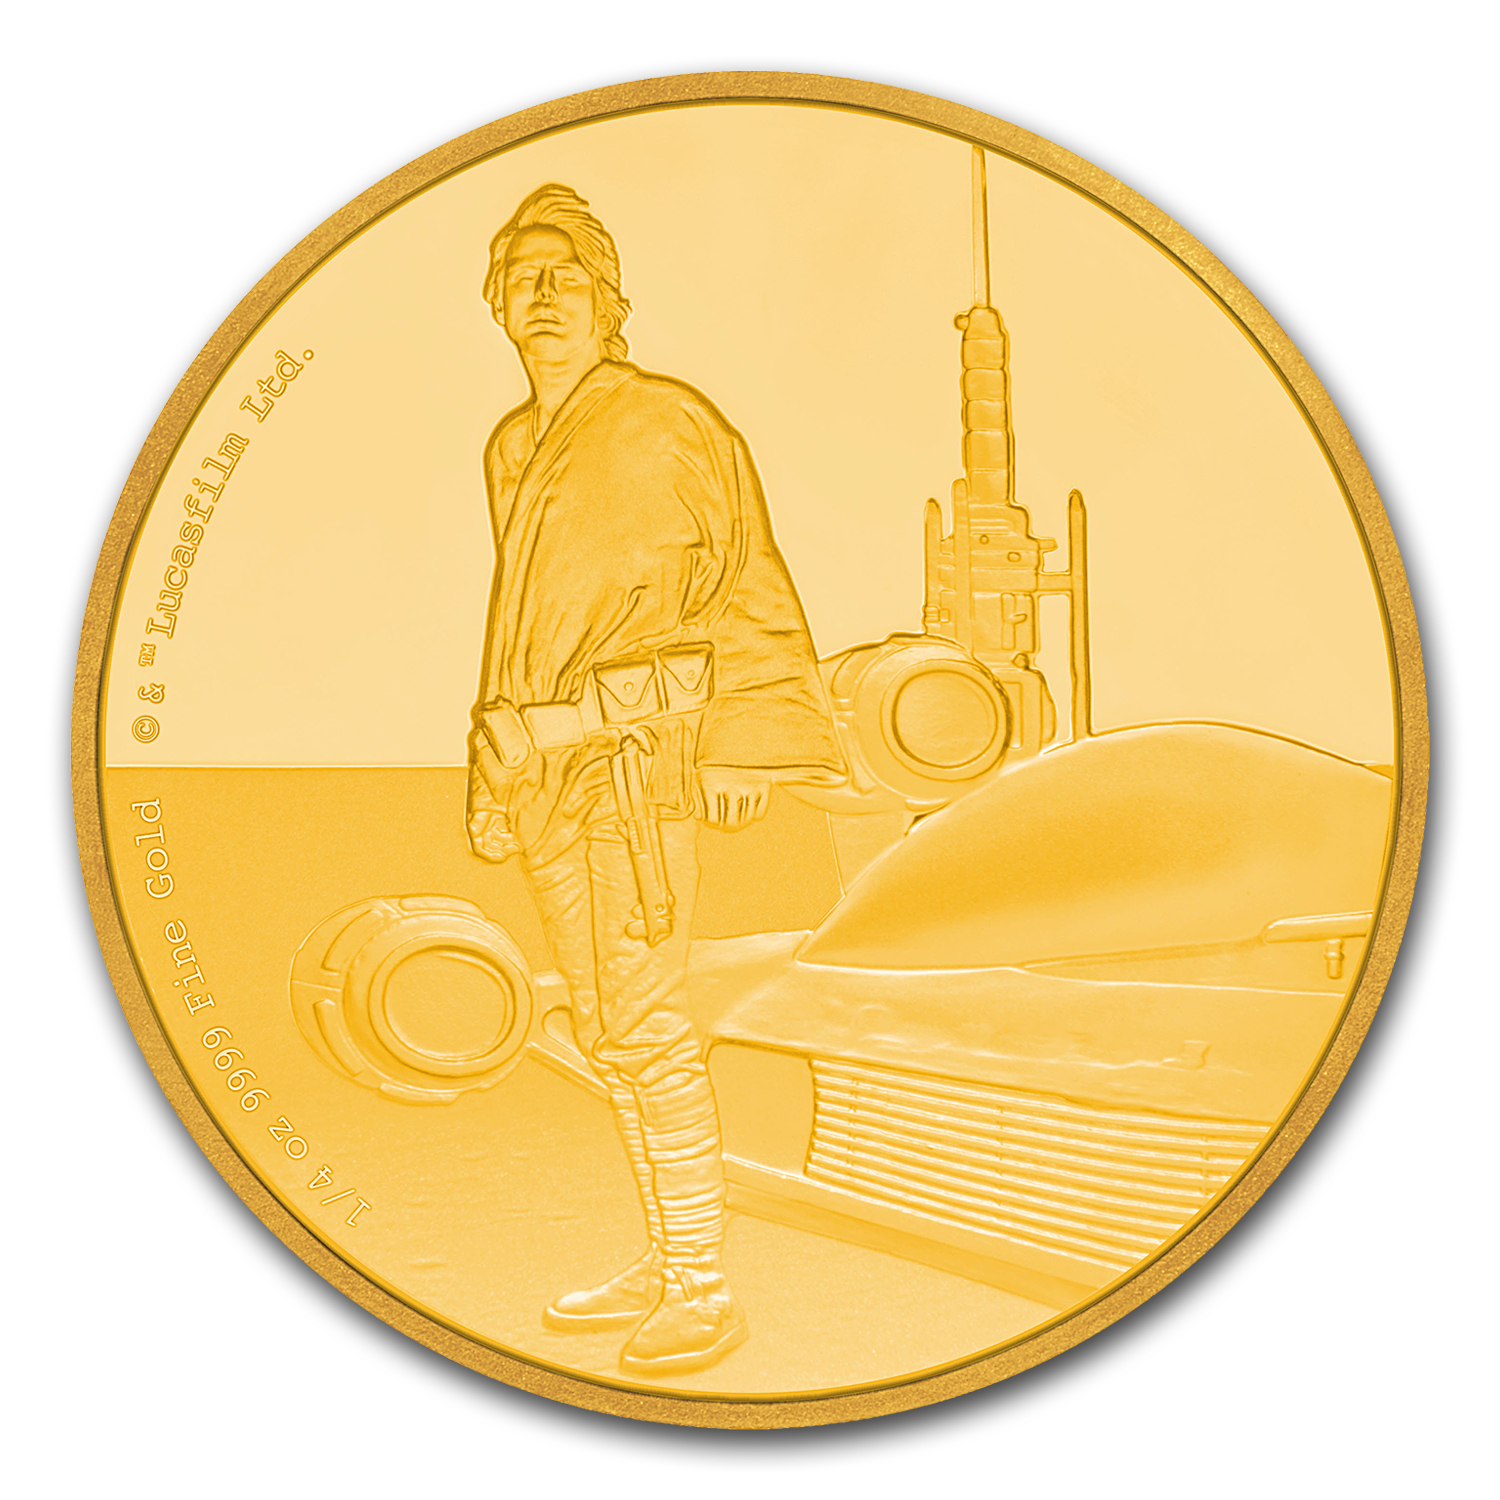 2017 Niue 1/4 oz Gold $25 Star Wars Luke Skywalker Pf (Box & COA)